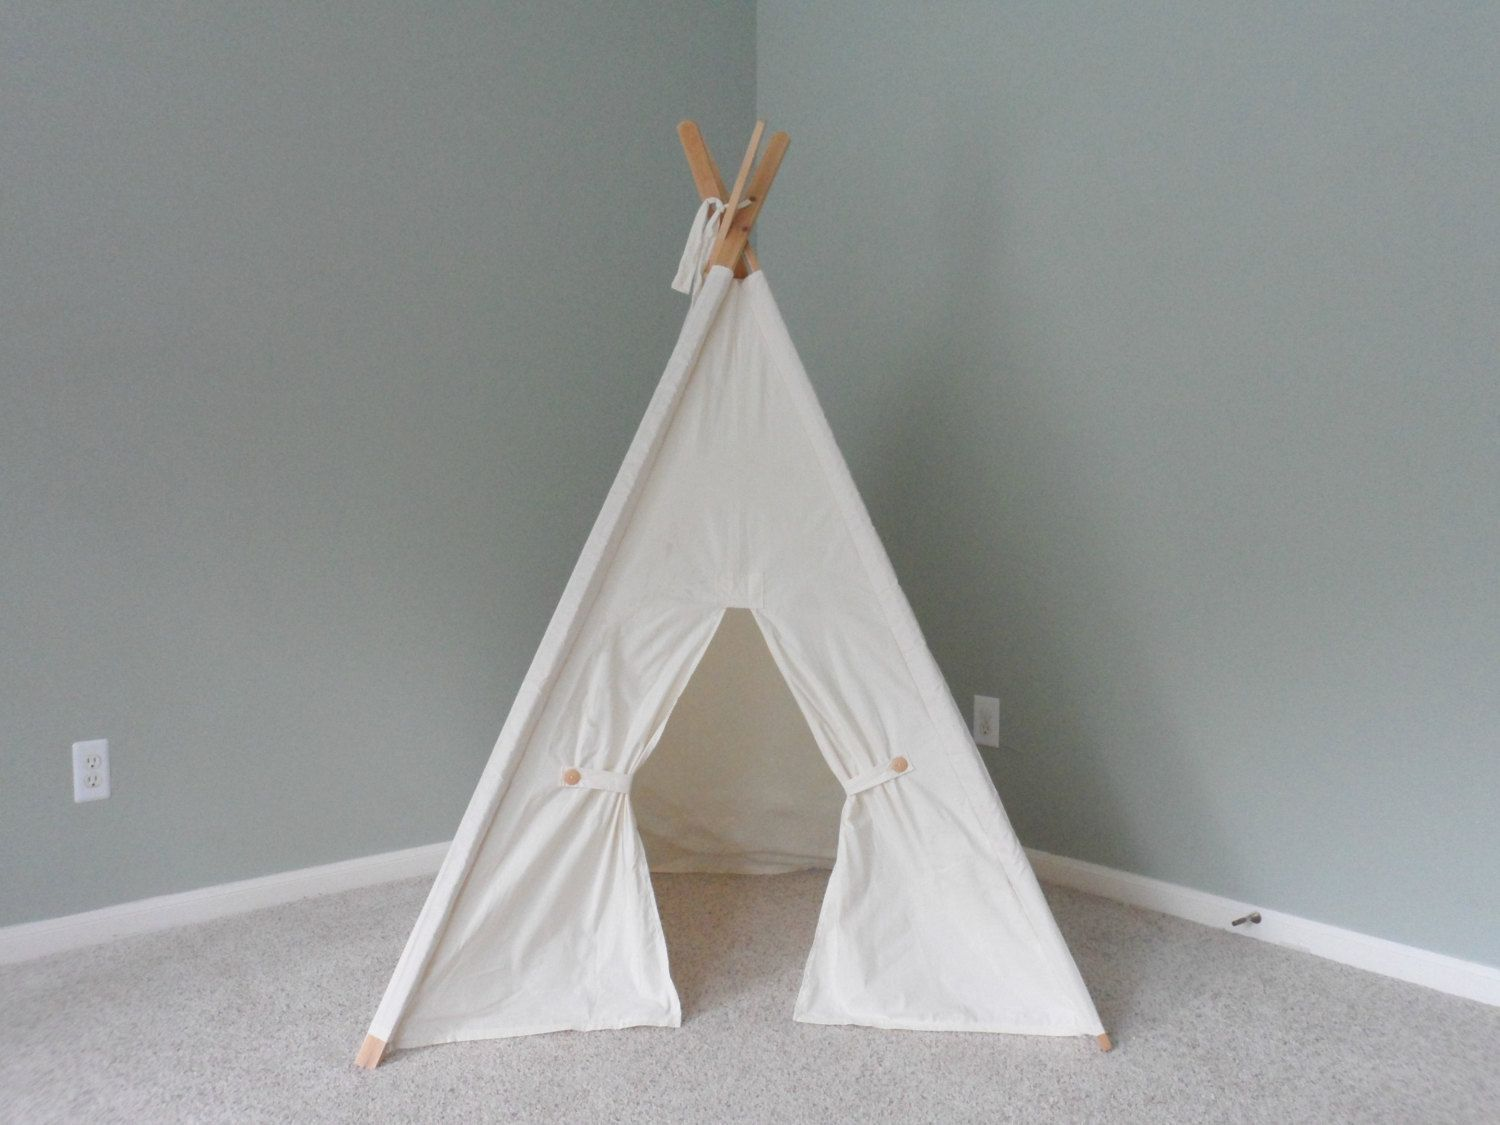 Muslin Kids Tent with Door Ties Teepee Play Tent Tipi Wigwam or Playhouse Pick your Muslin & Muslin Kids Tent with Door Ties Teepee Play Tent Tipi Wigwam or ...